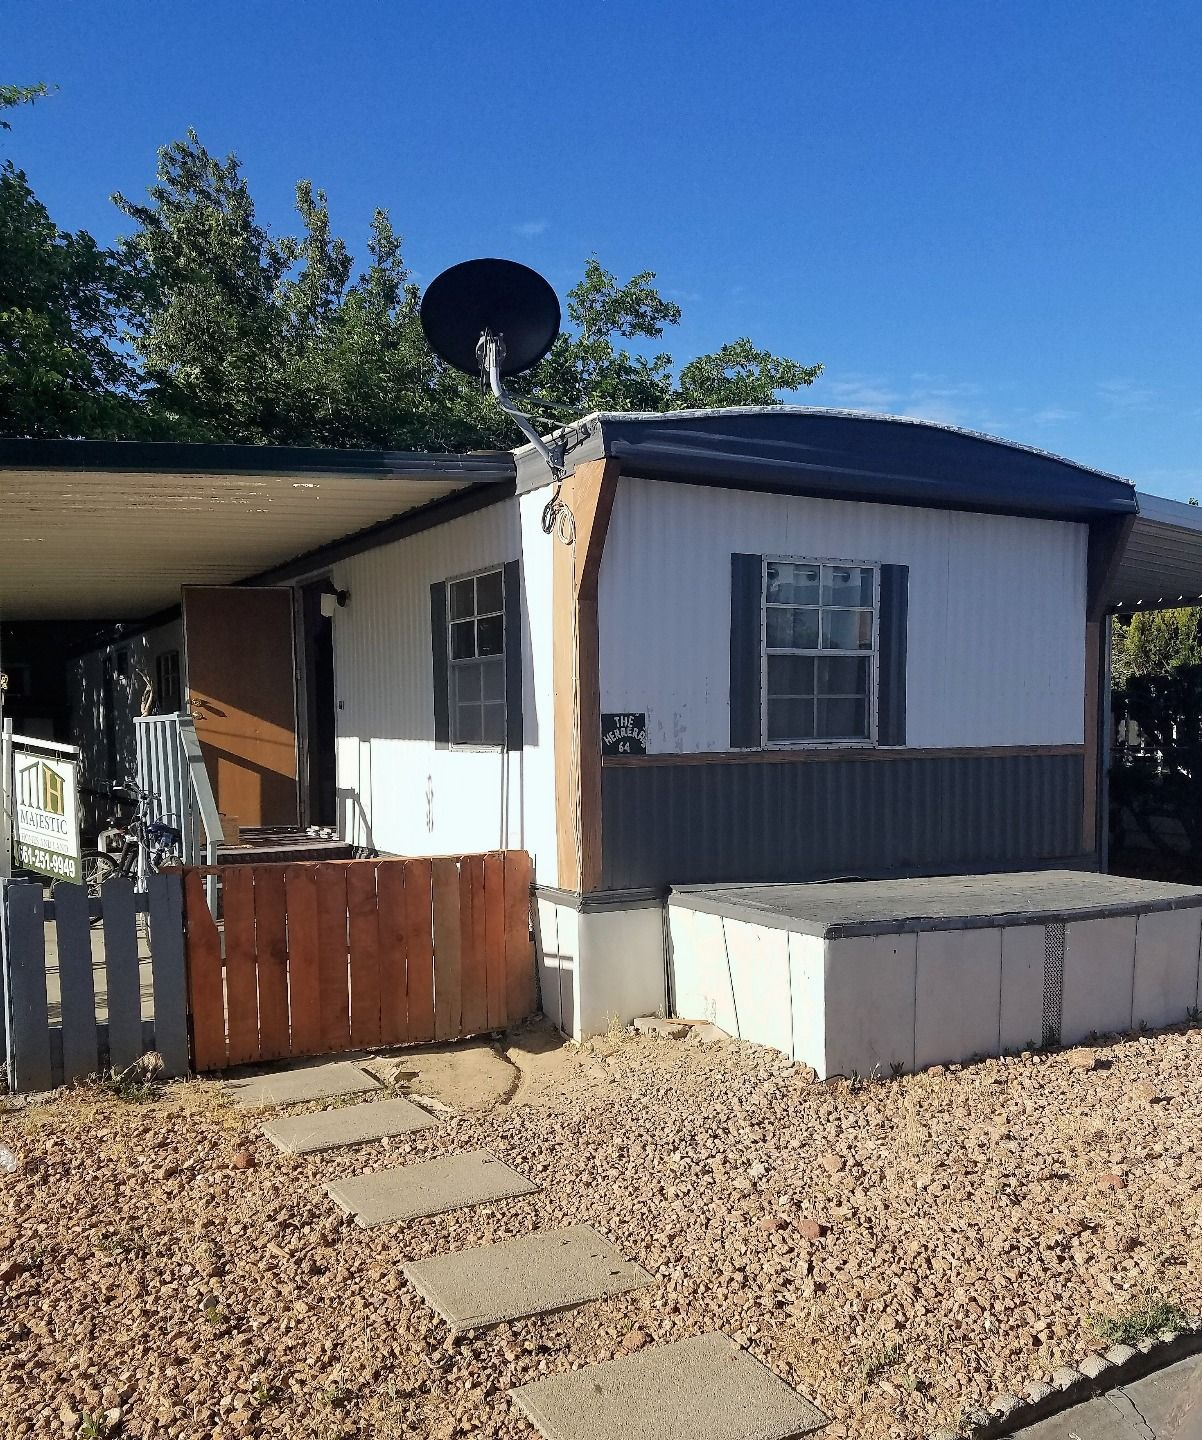 Home Forsale Contact Majestichomes 6612519949 Redman Mobile Manufactured Home In Lancaster Ca Via M Mobile Homes For Sale Ideal Home Manufactured Home